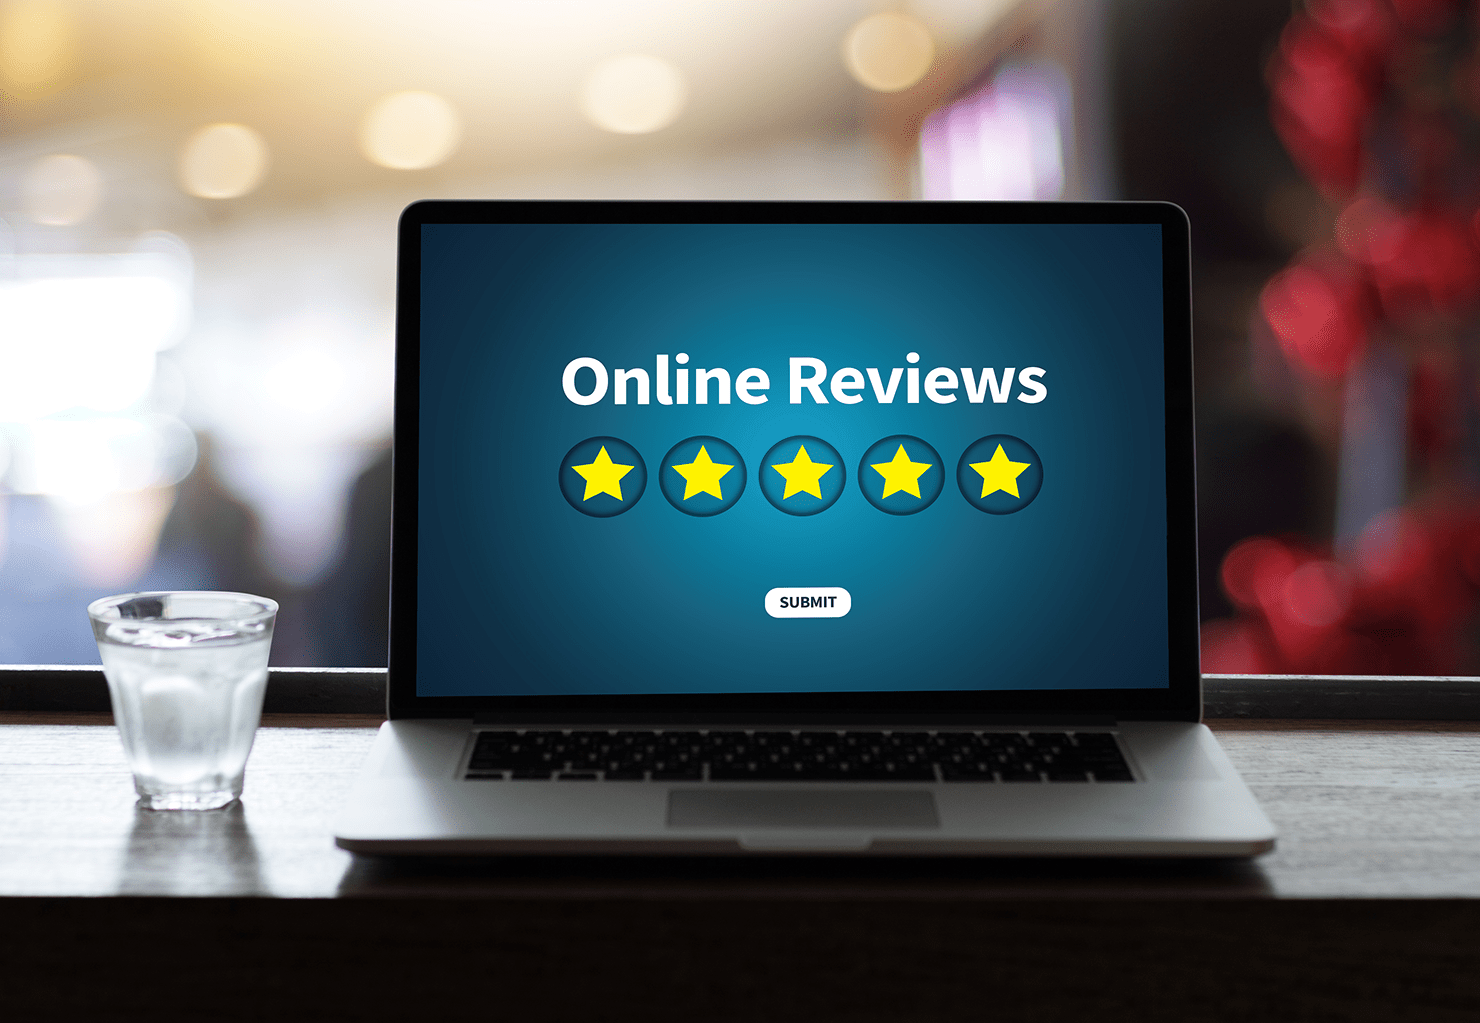 How does it is important to view the product reviews?